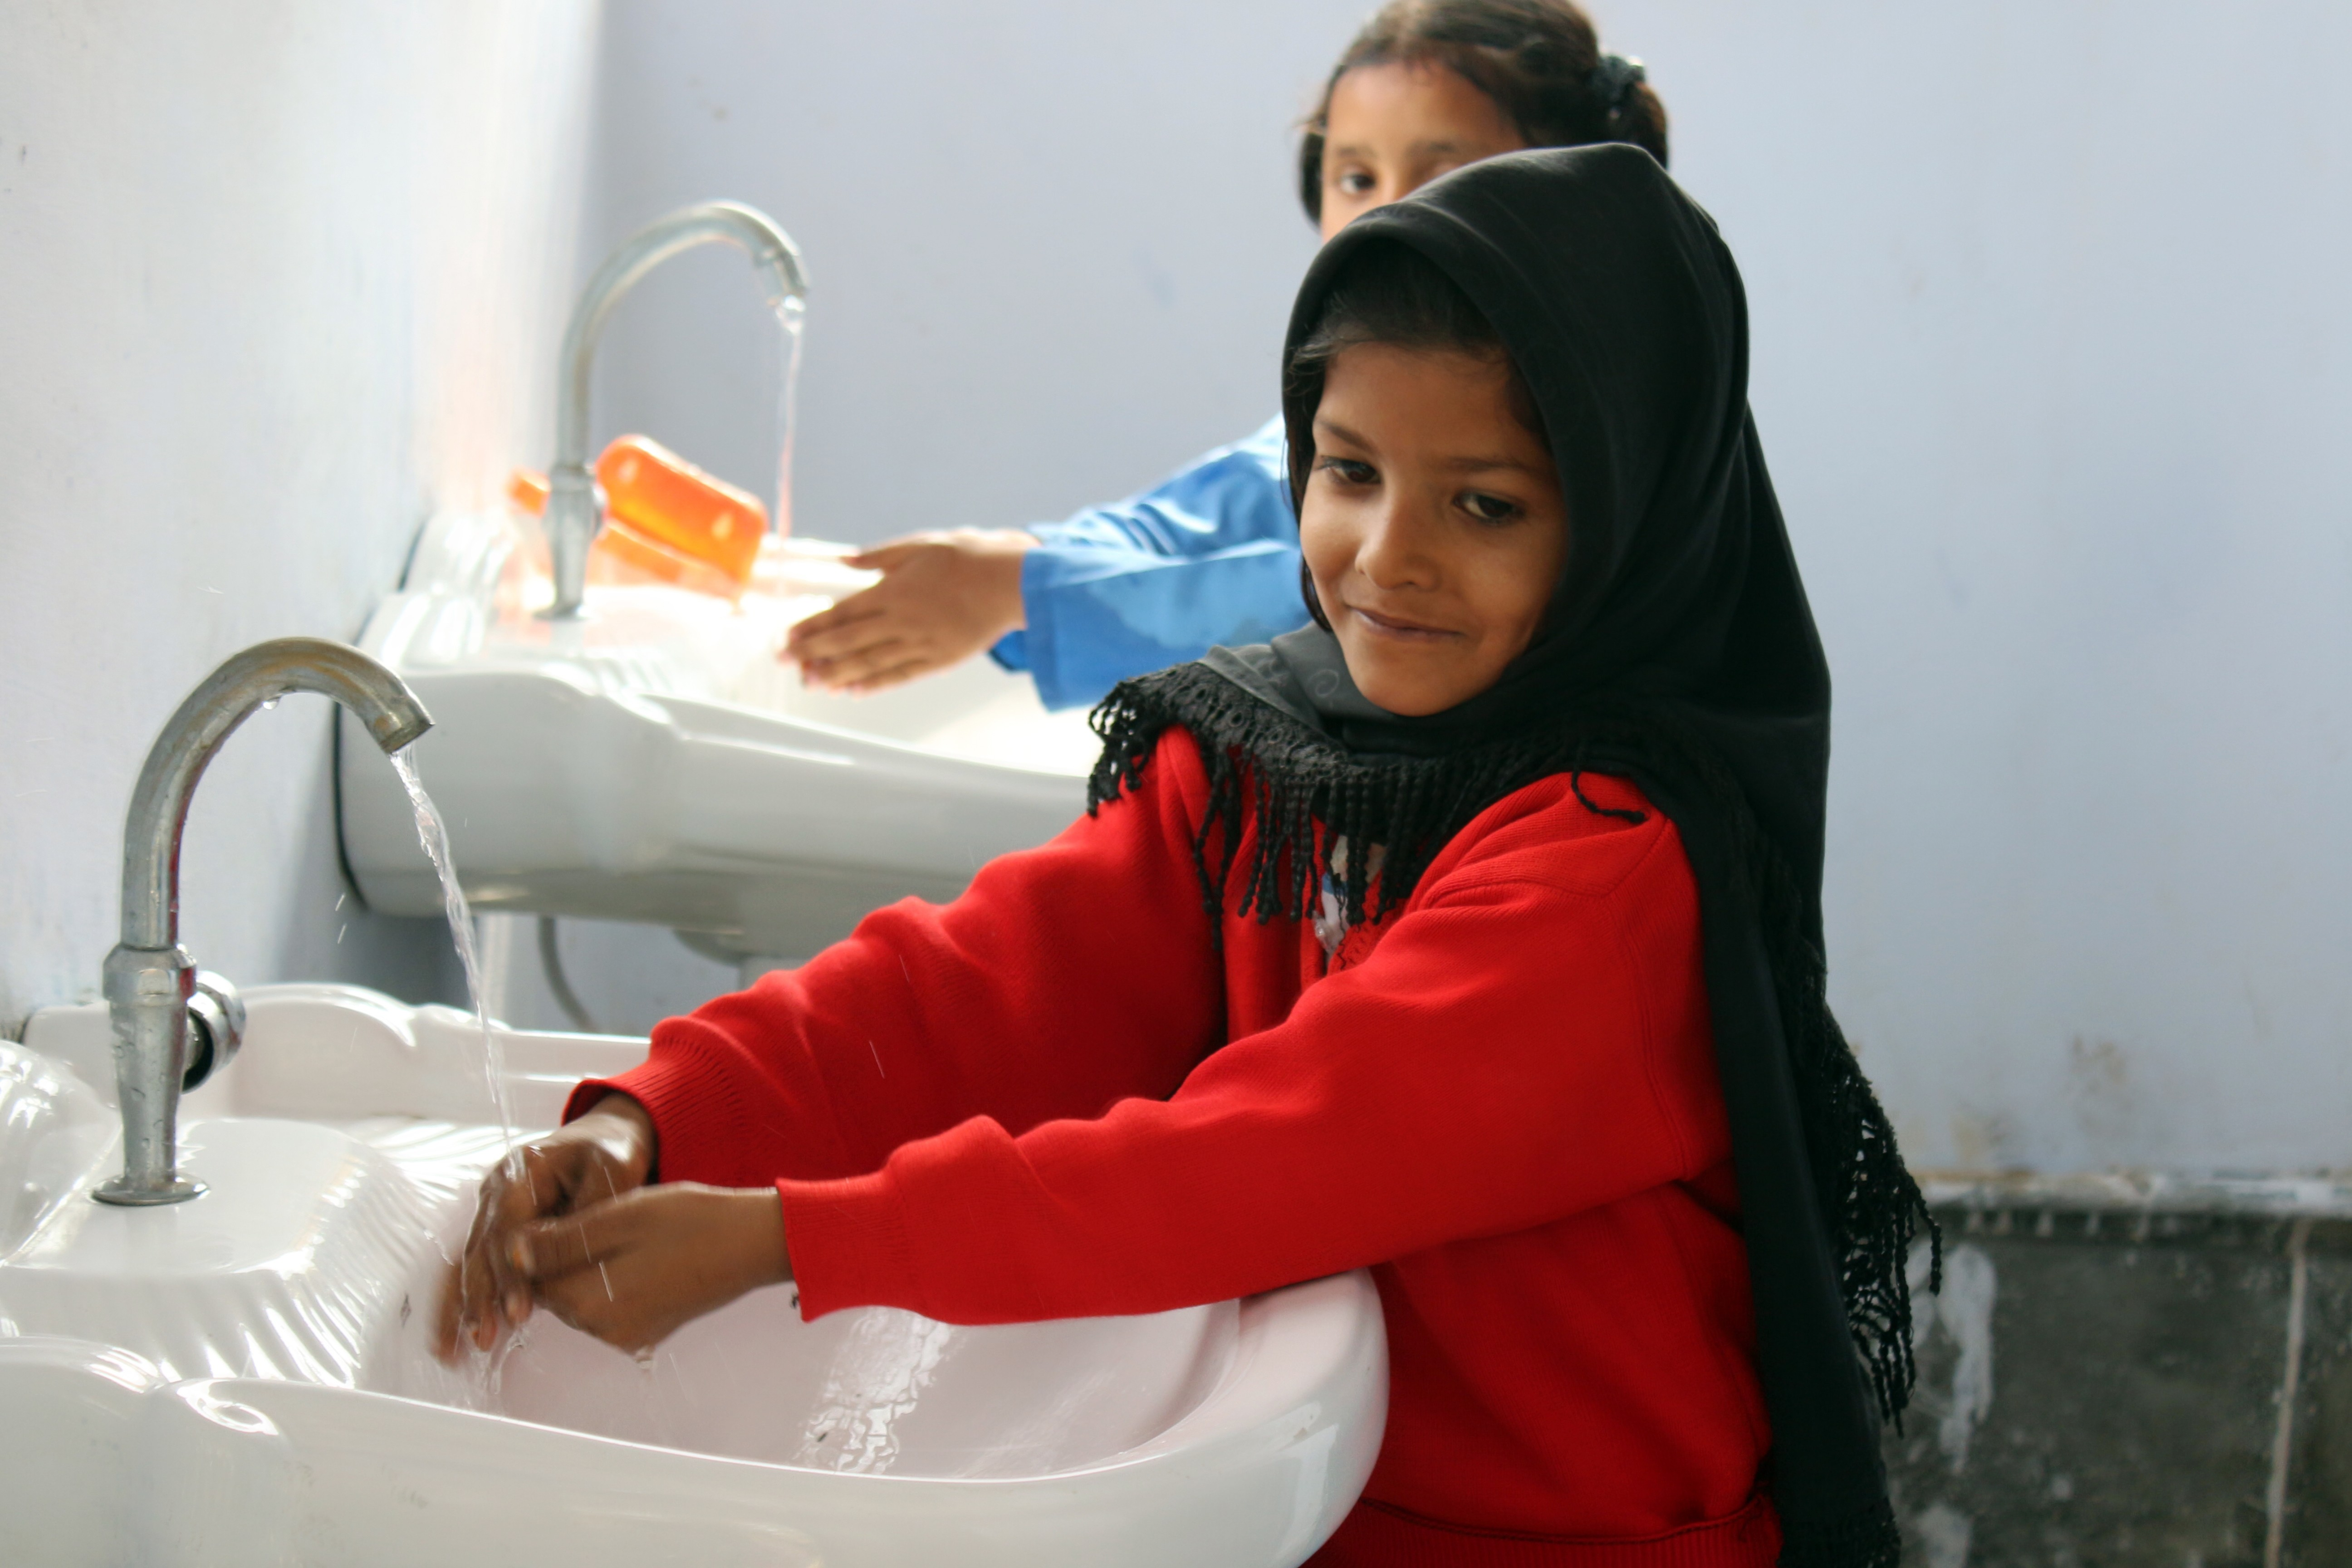 A school in Pakistan teaches children how to wash their hands